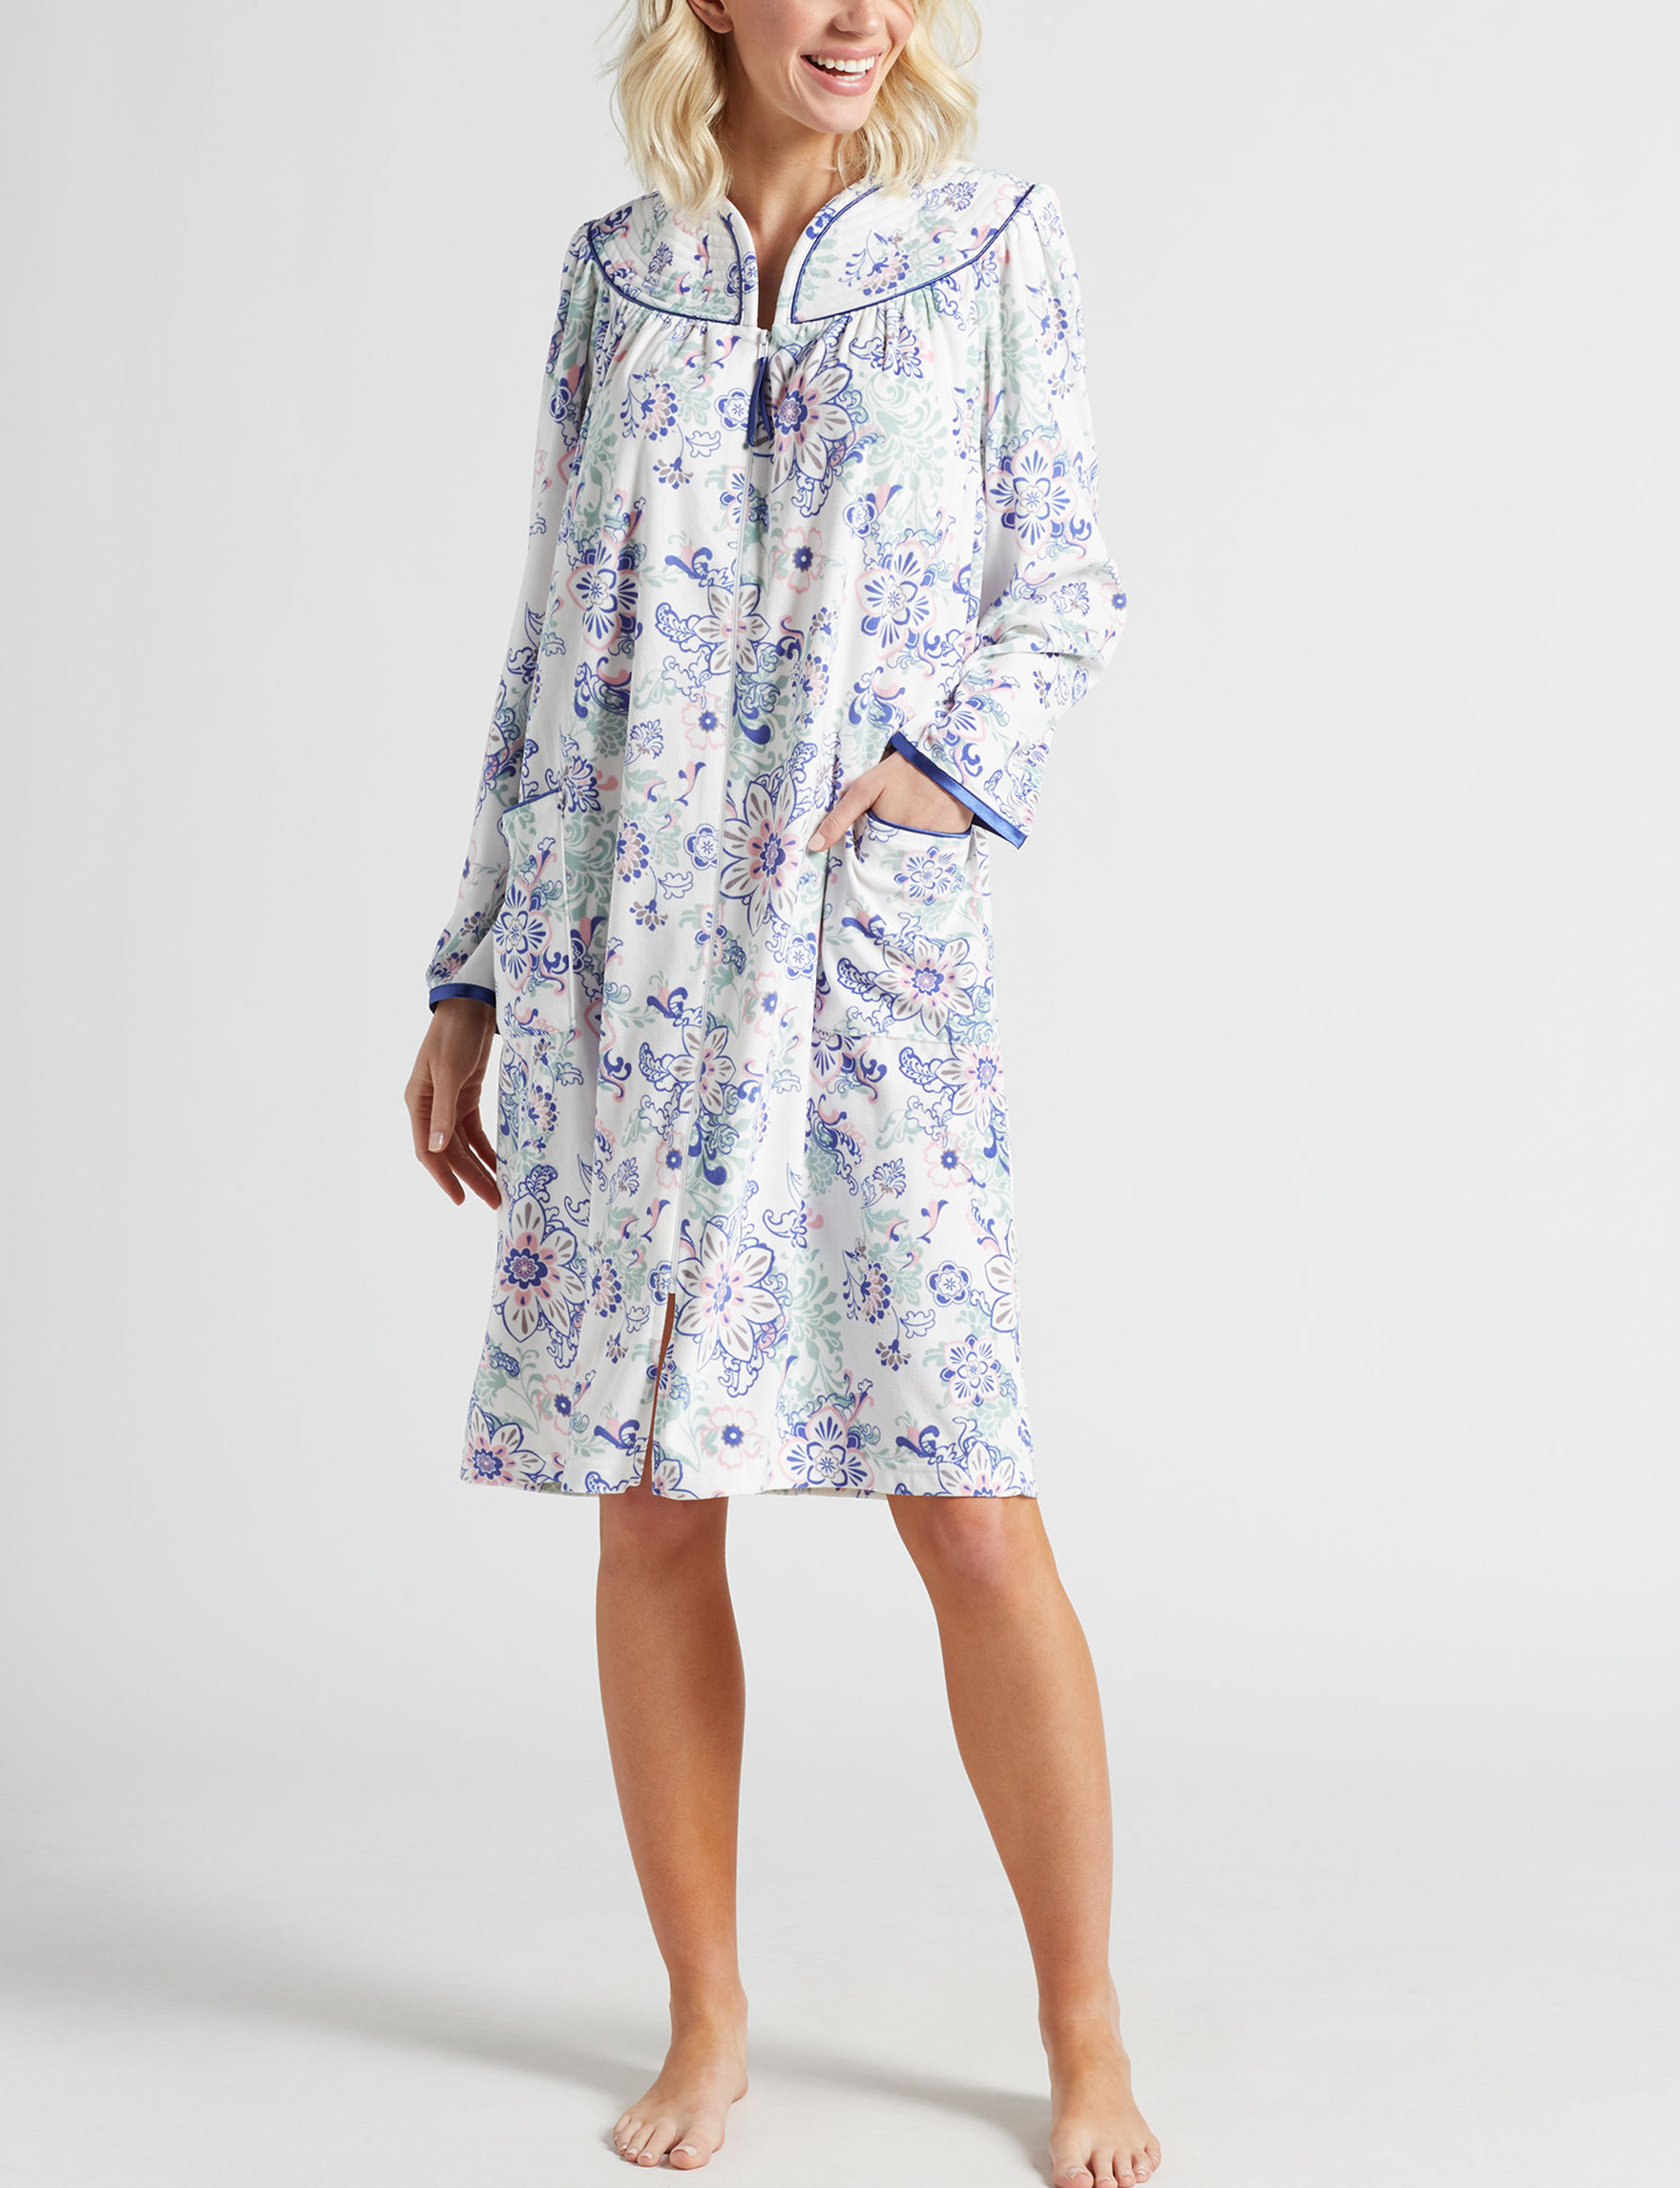 Lissome Ivory Floral Robes, Wraps & Dusters